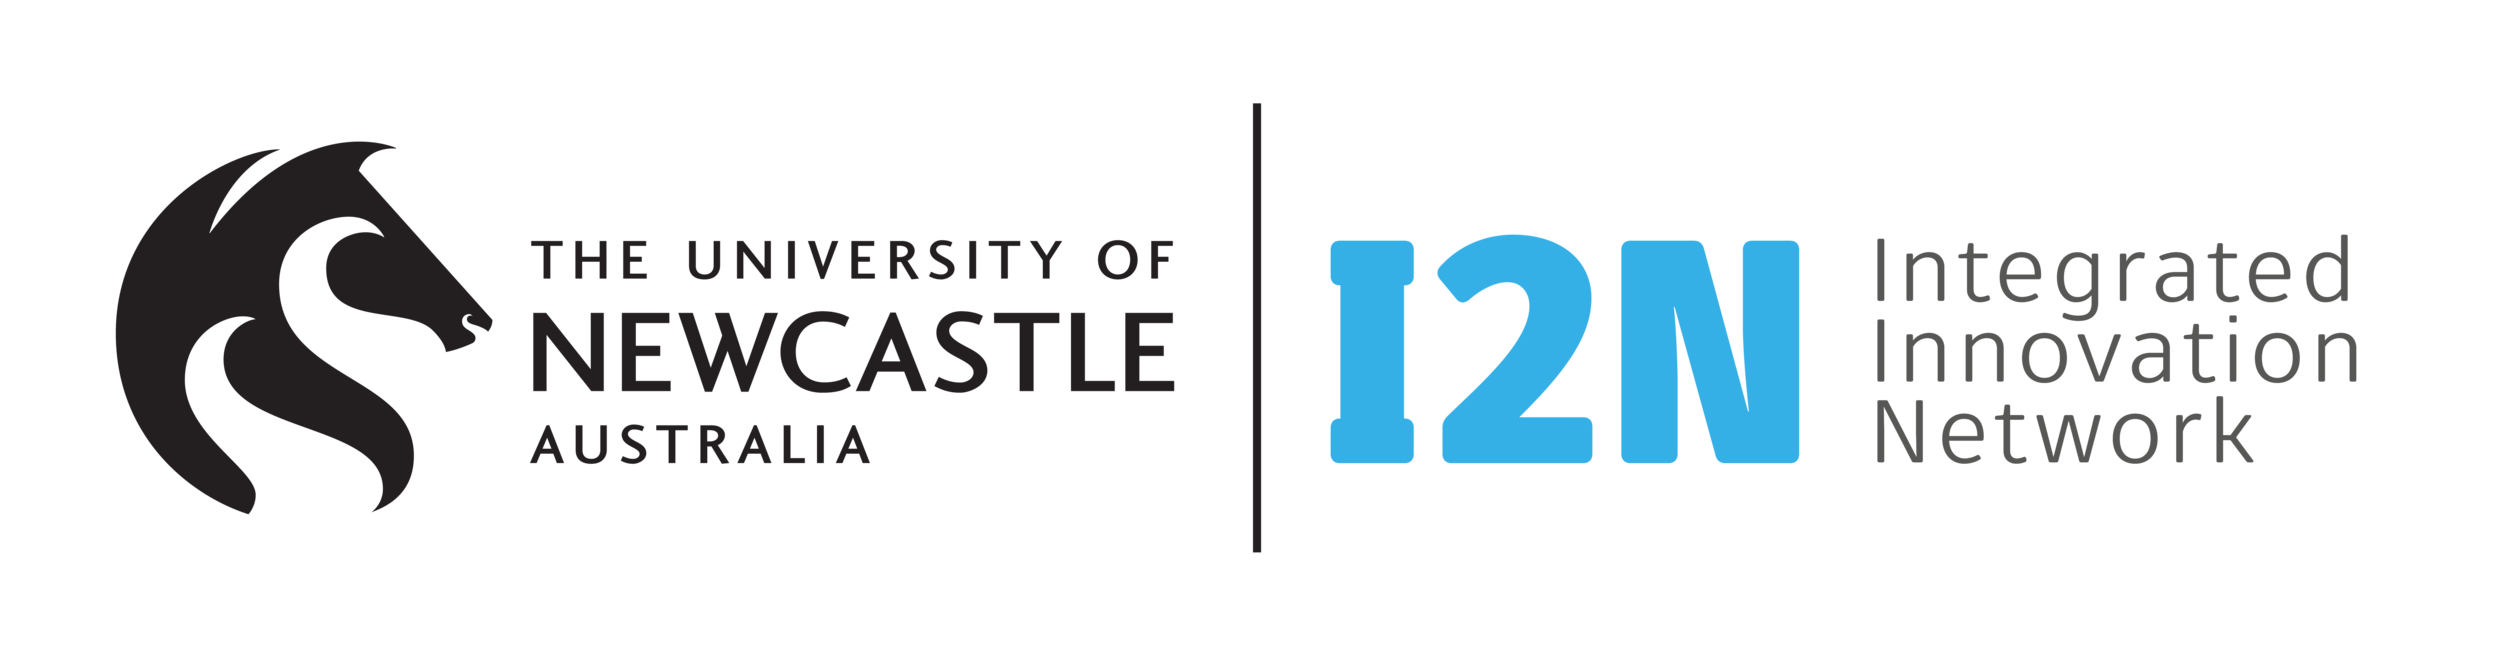 I2N - The University of Newcastle